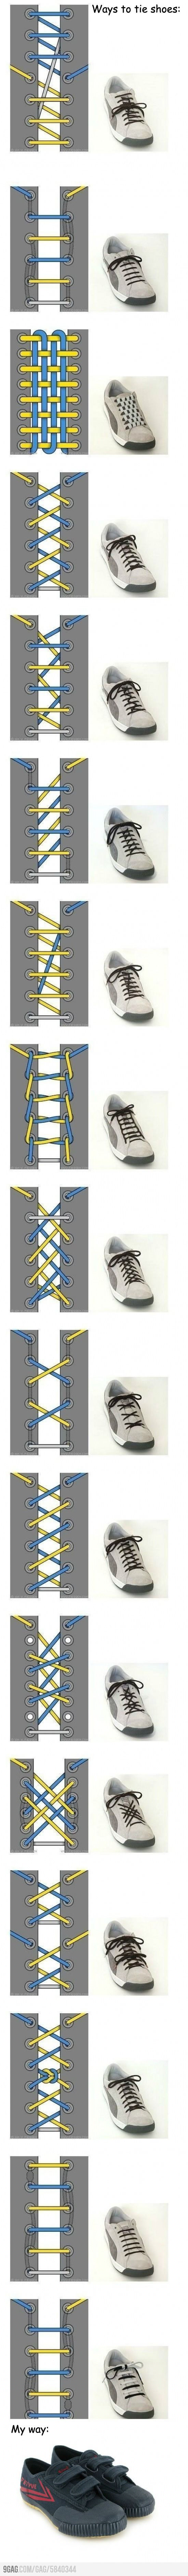 Ways to tie shoes ~Only b/c my daughter is obsessed with the way her shoes are tied. I'm going to have to show her this one! ~J.